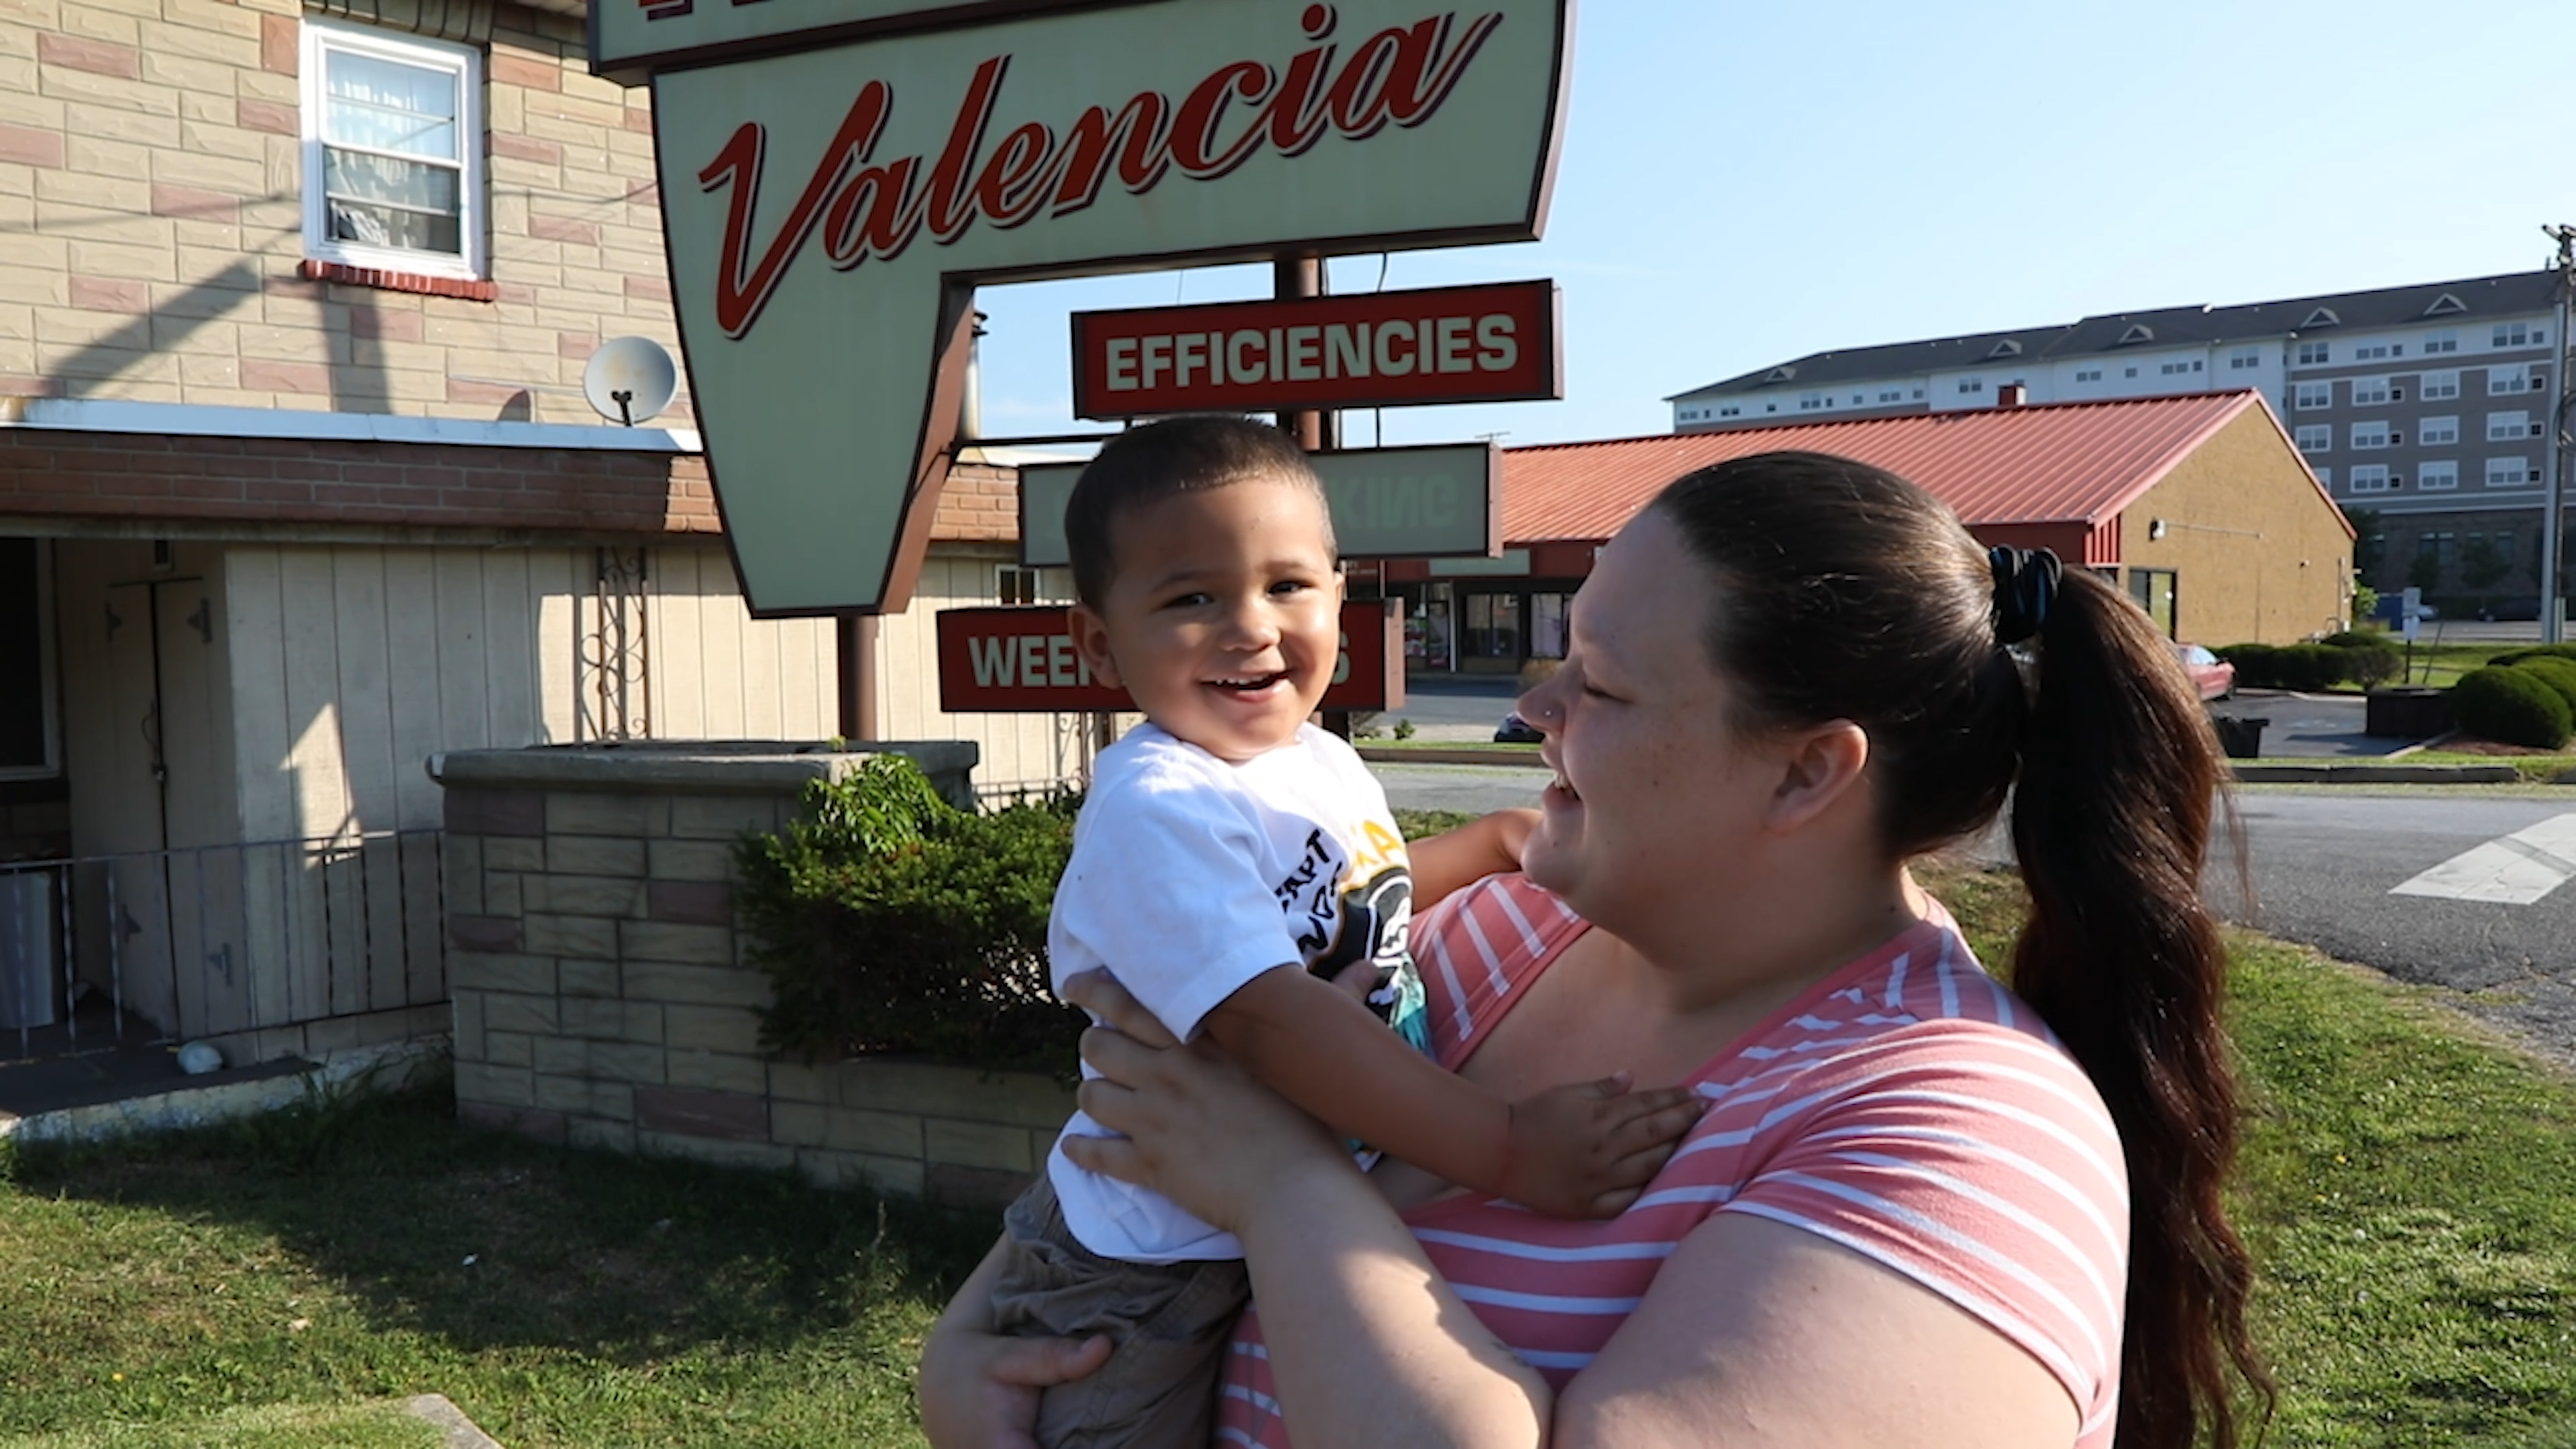 A mother and son outside their residence at a motel.